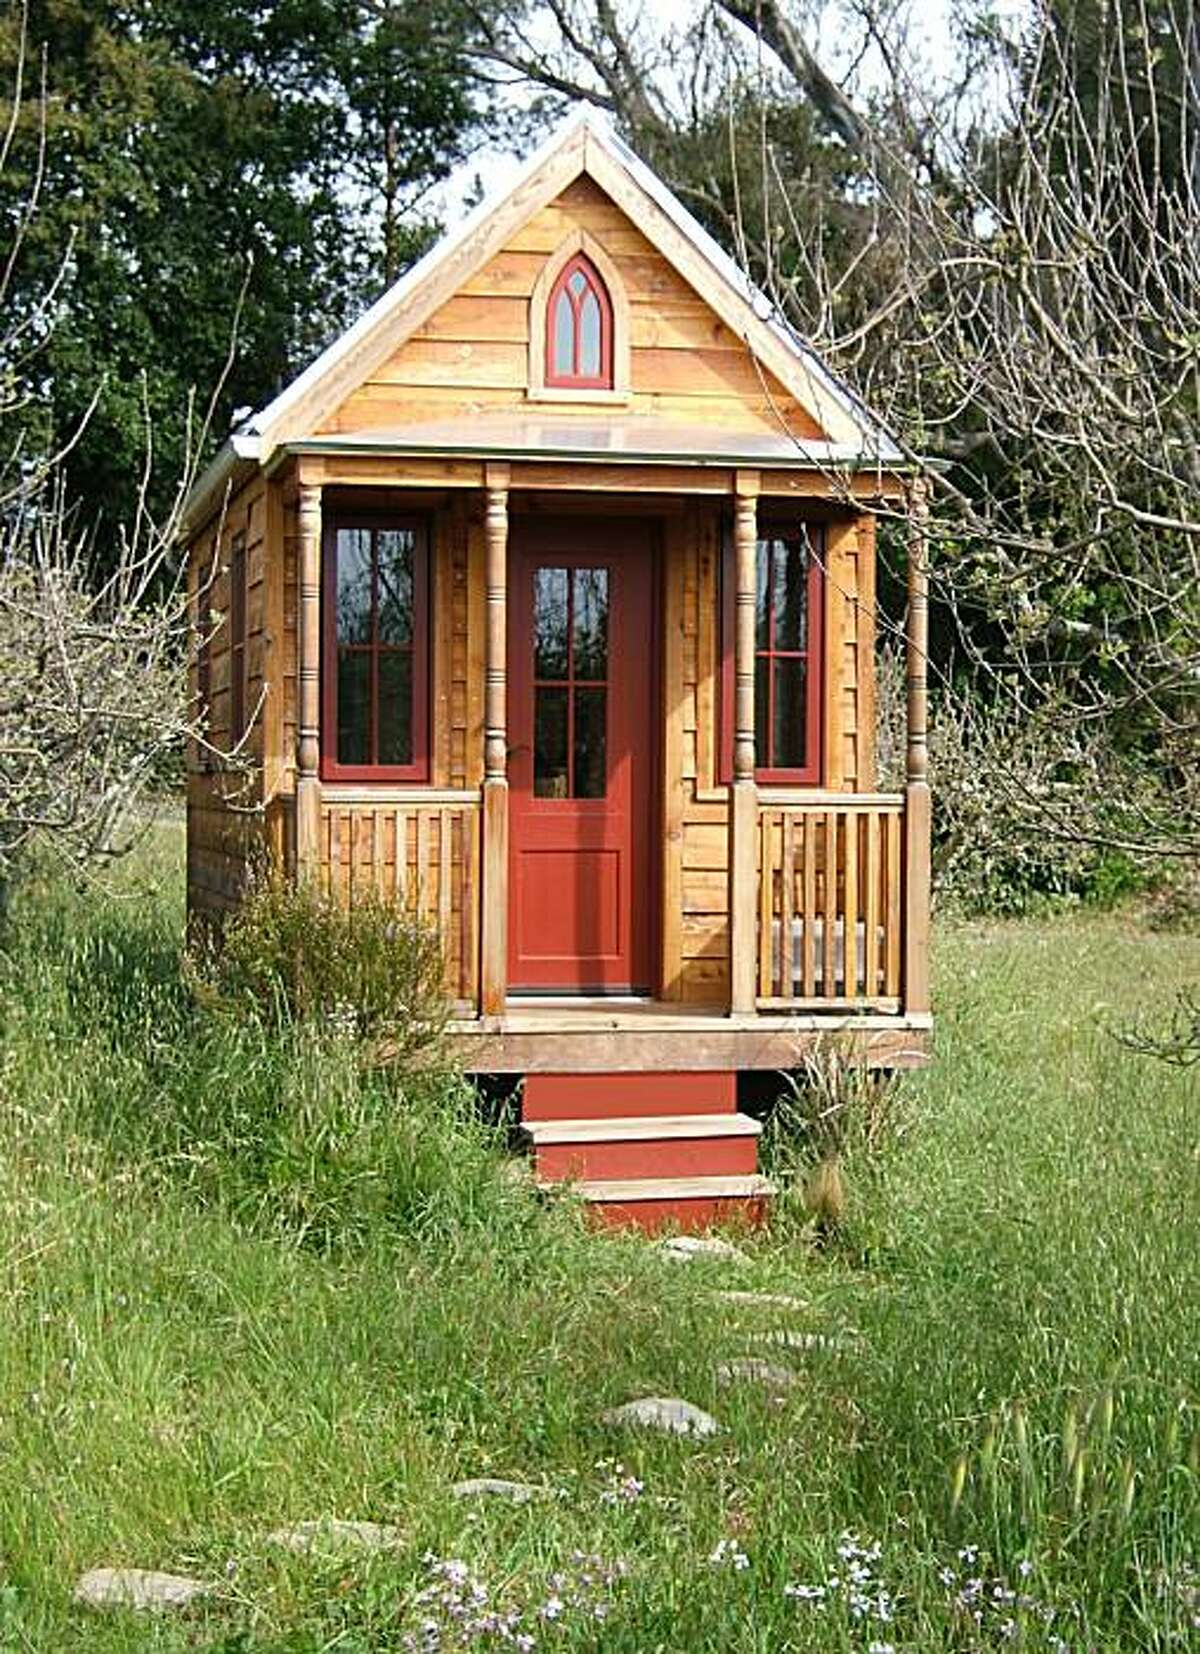 Photo courtesy Tumbleweed Tiny House Co., 2008 Leslie Webster: My favorite is one I?ve loved for a long time, and which will only gain in popularity in 2011: small homes. Having only what you love, need and use simplifies things, is more economical, and leaves time and money for fun.?